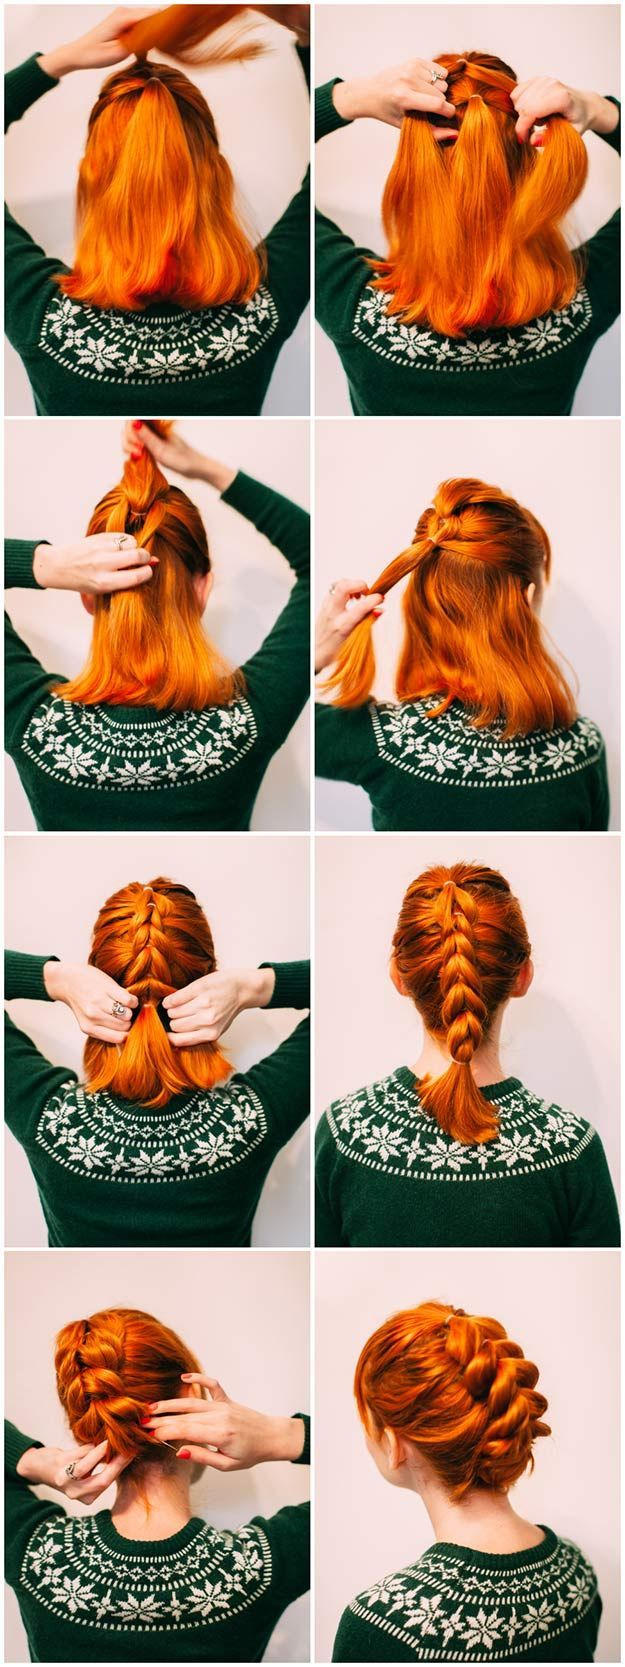 Quick and easy short hair styles faux braids shoulder length hair